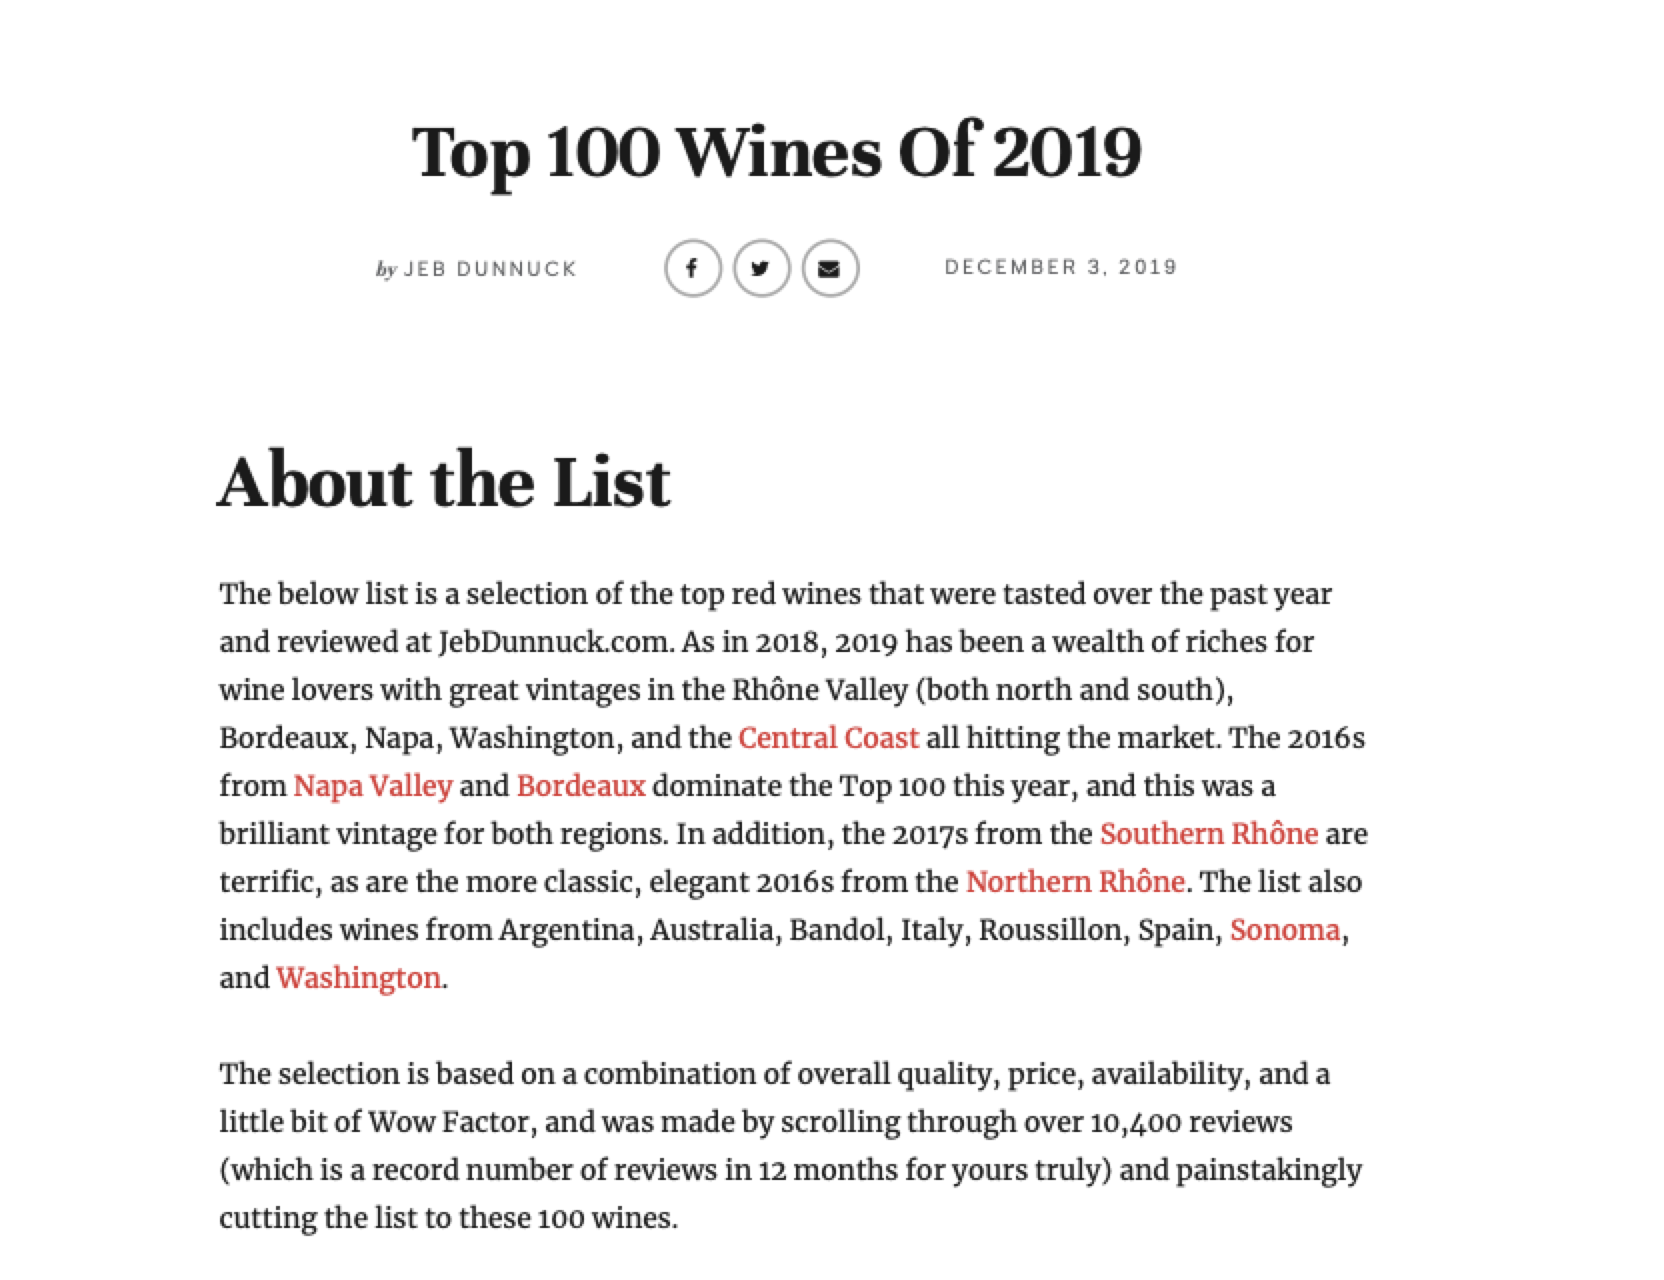 1Top 100 Wines Of 2019 - JebDunnuck